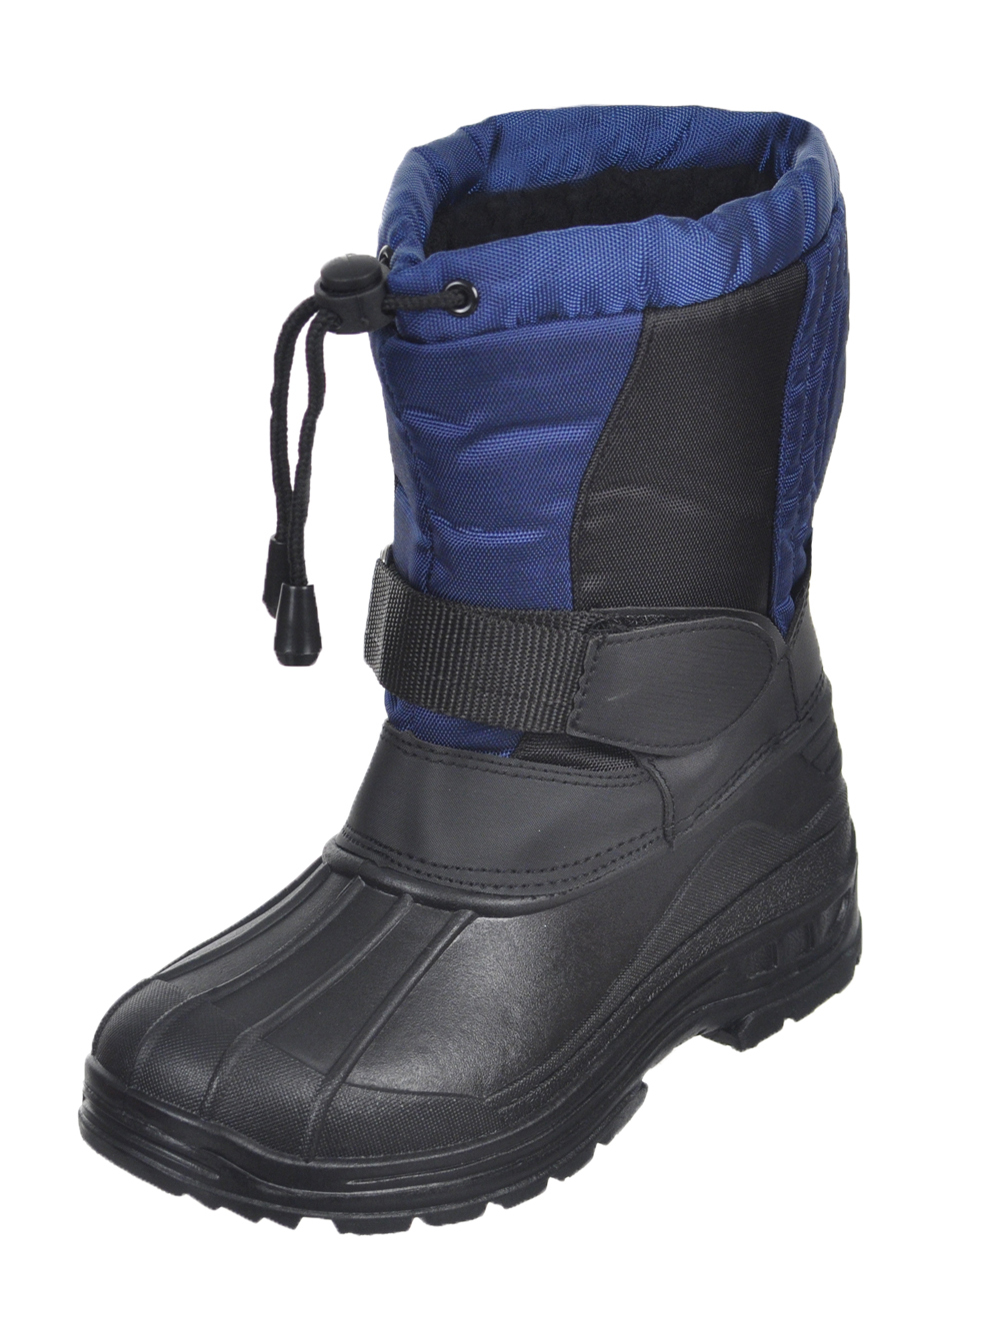 skadoo boys quot snow goer quot boots youth sizes 13 6 ebay